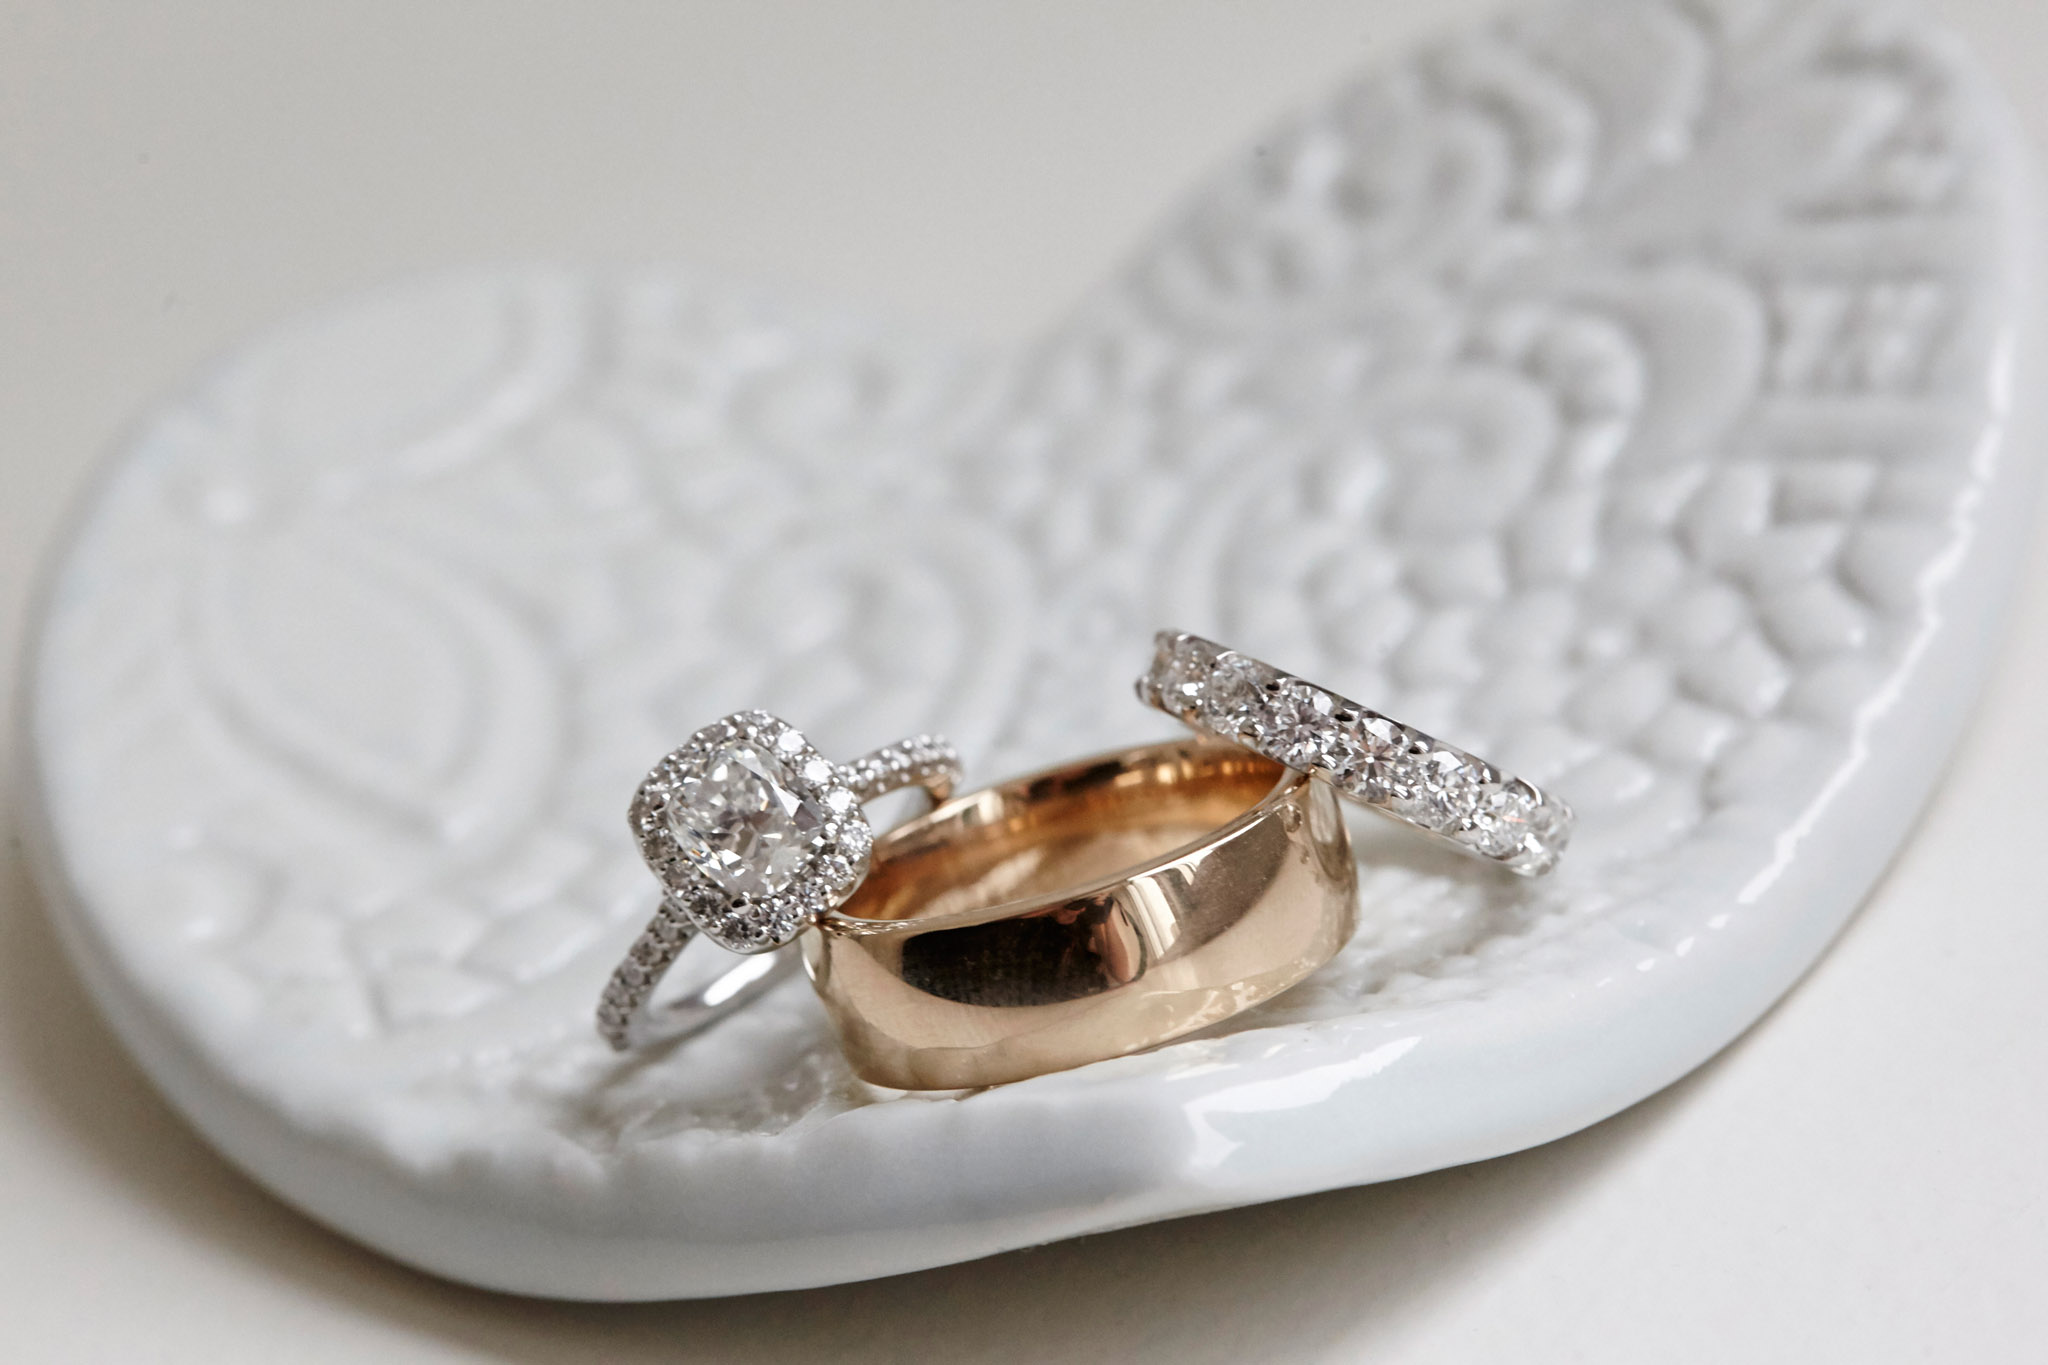 Up close photo of engagement ring and wedding rings wedding detail shot photography